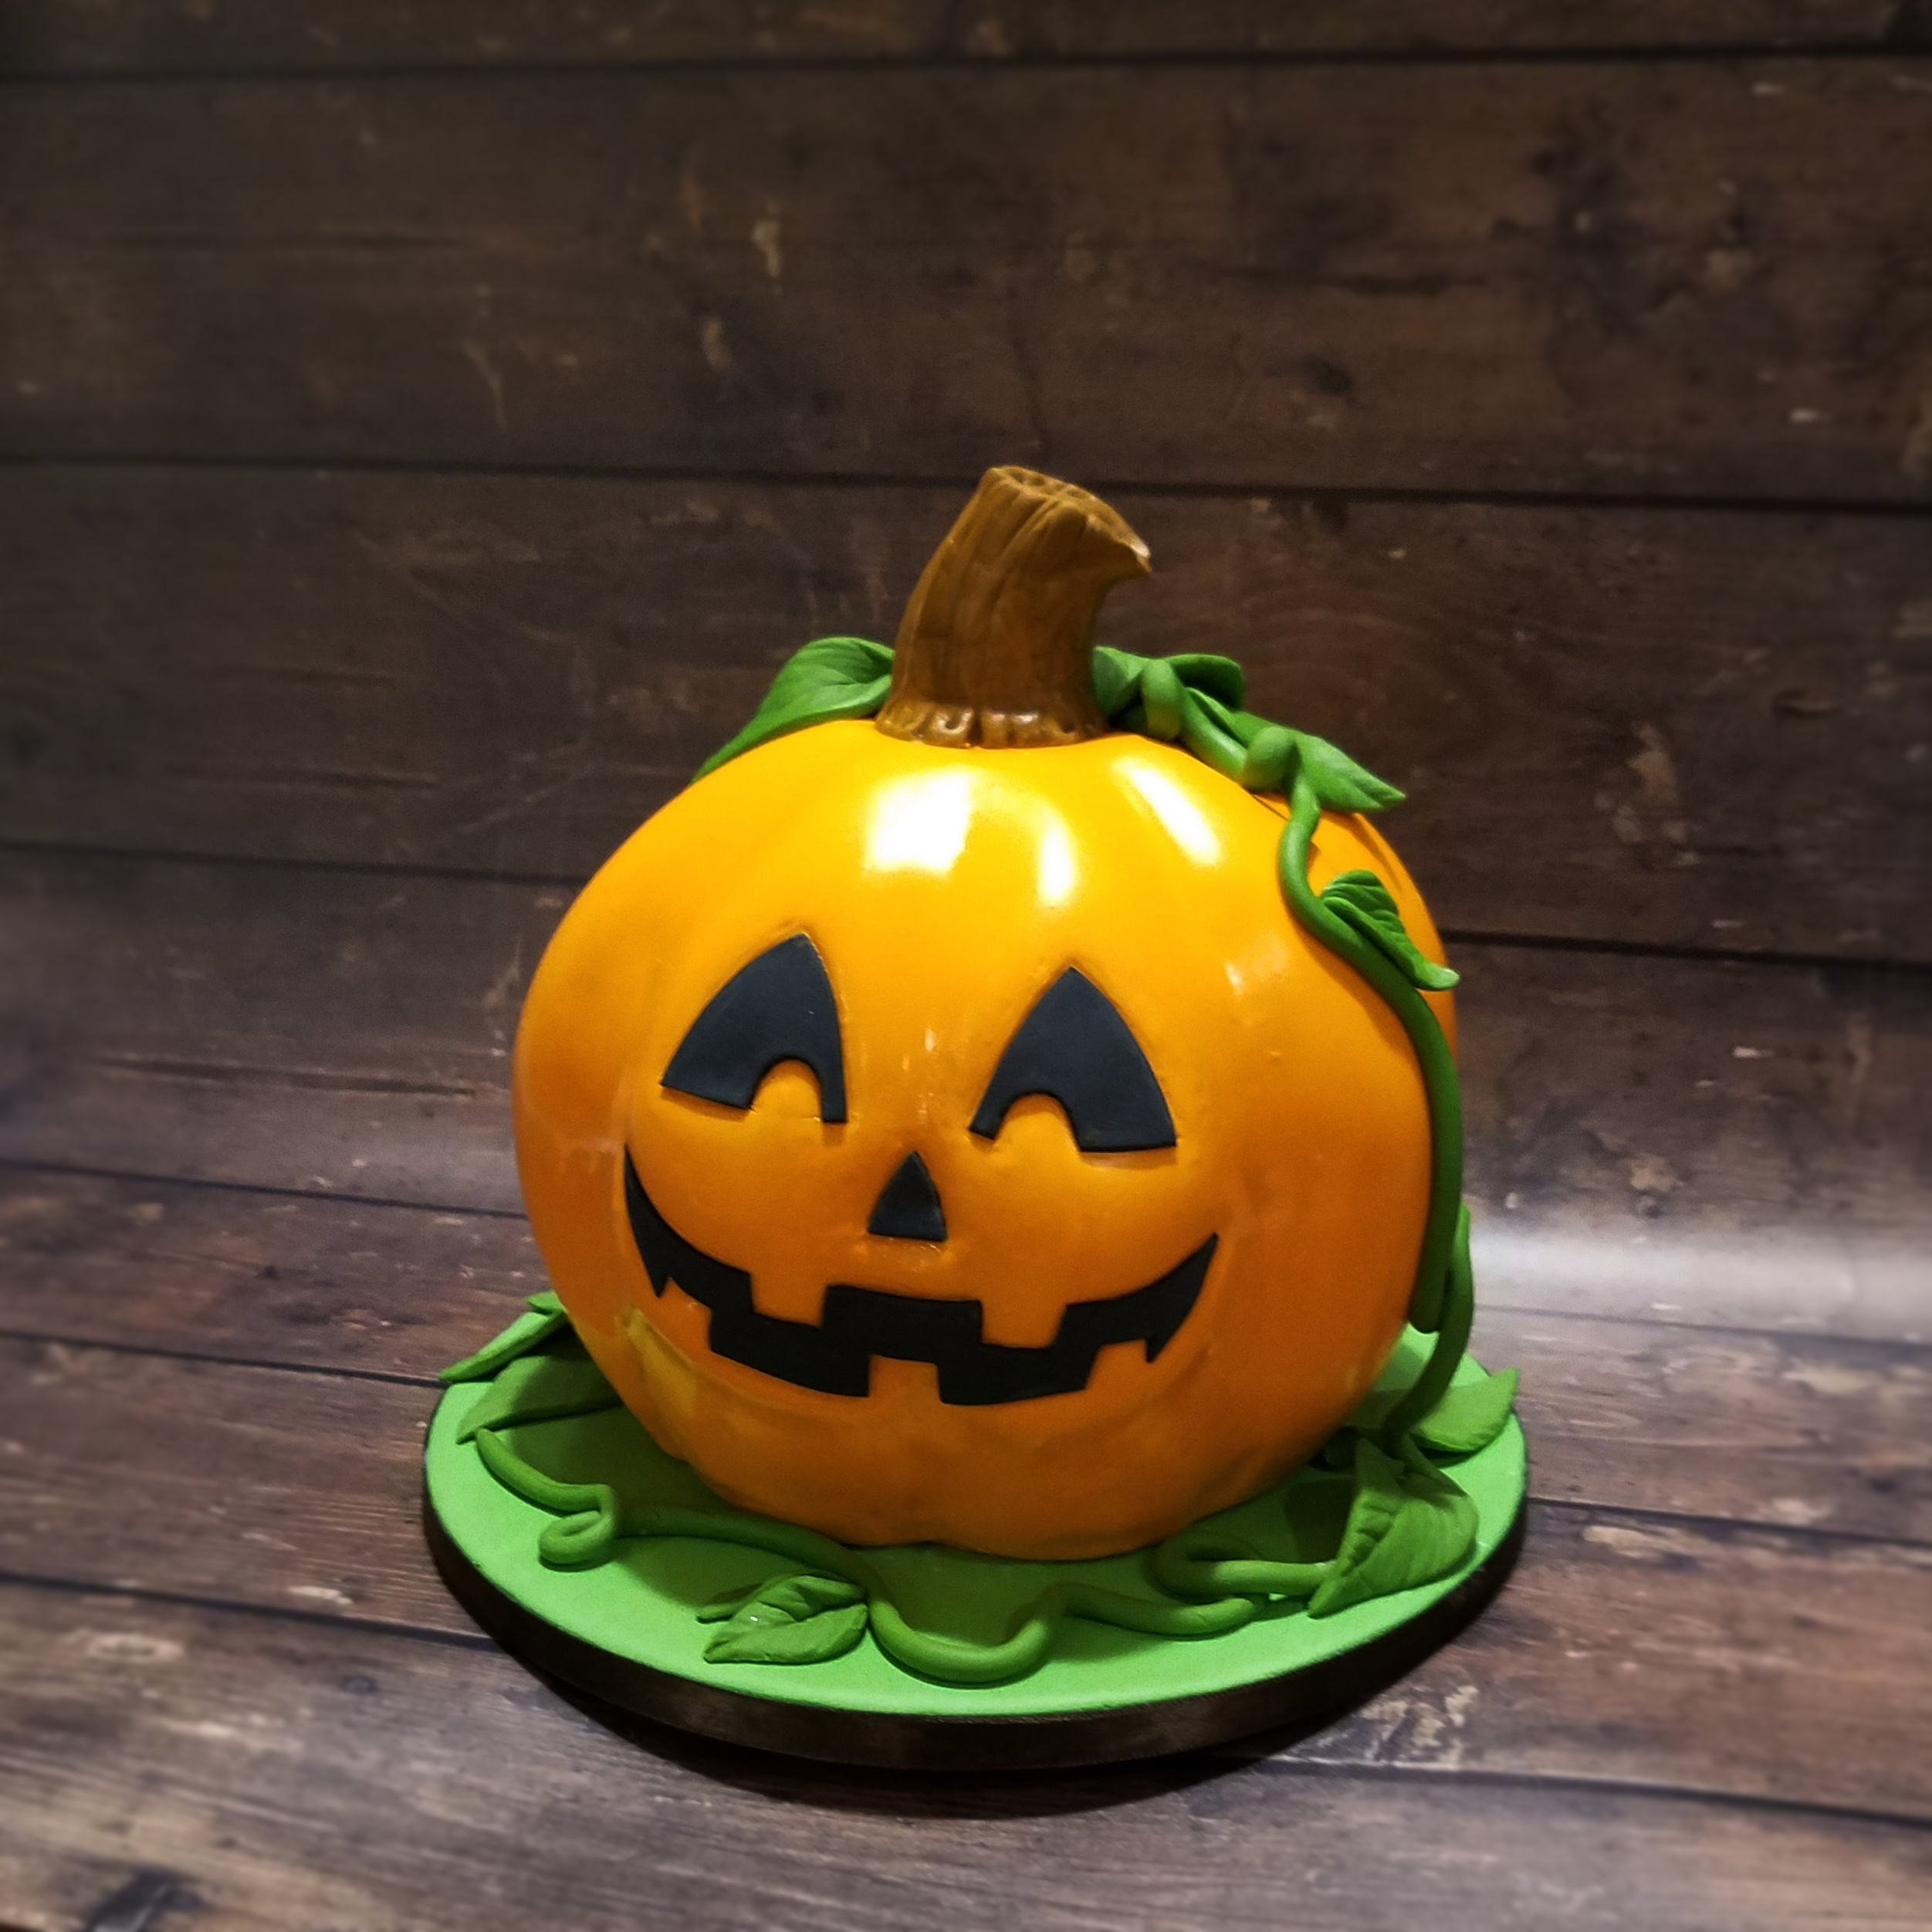 Cute little pumpkin smash cake